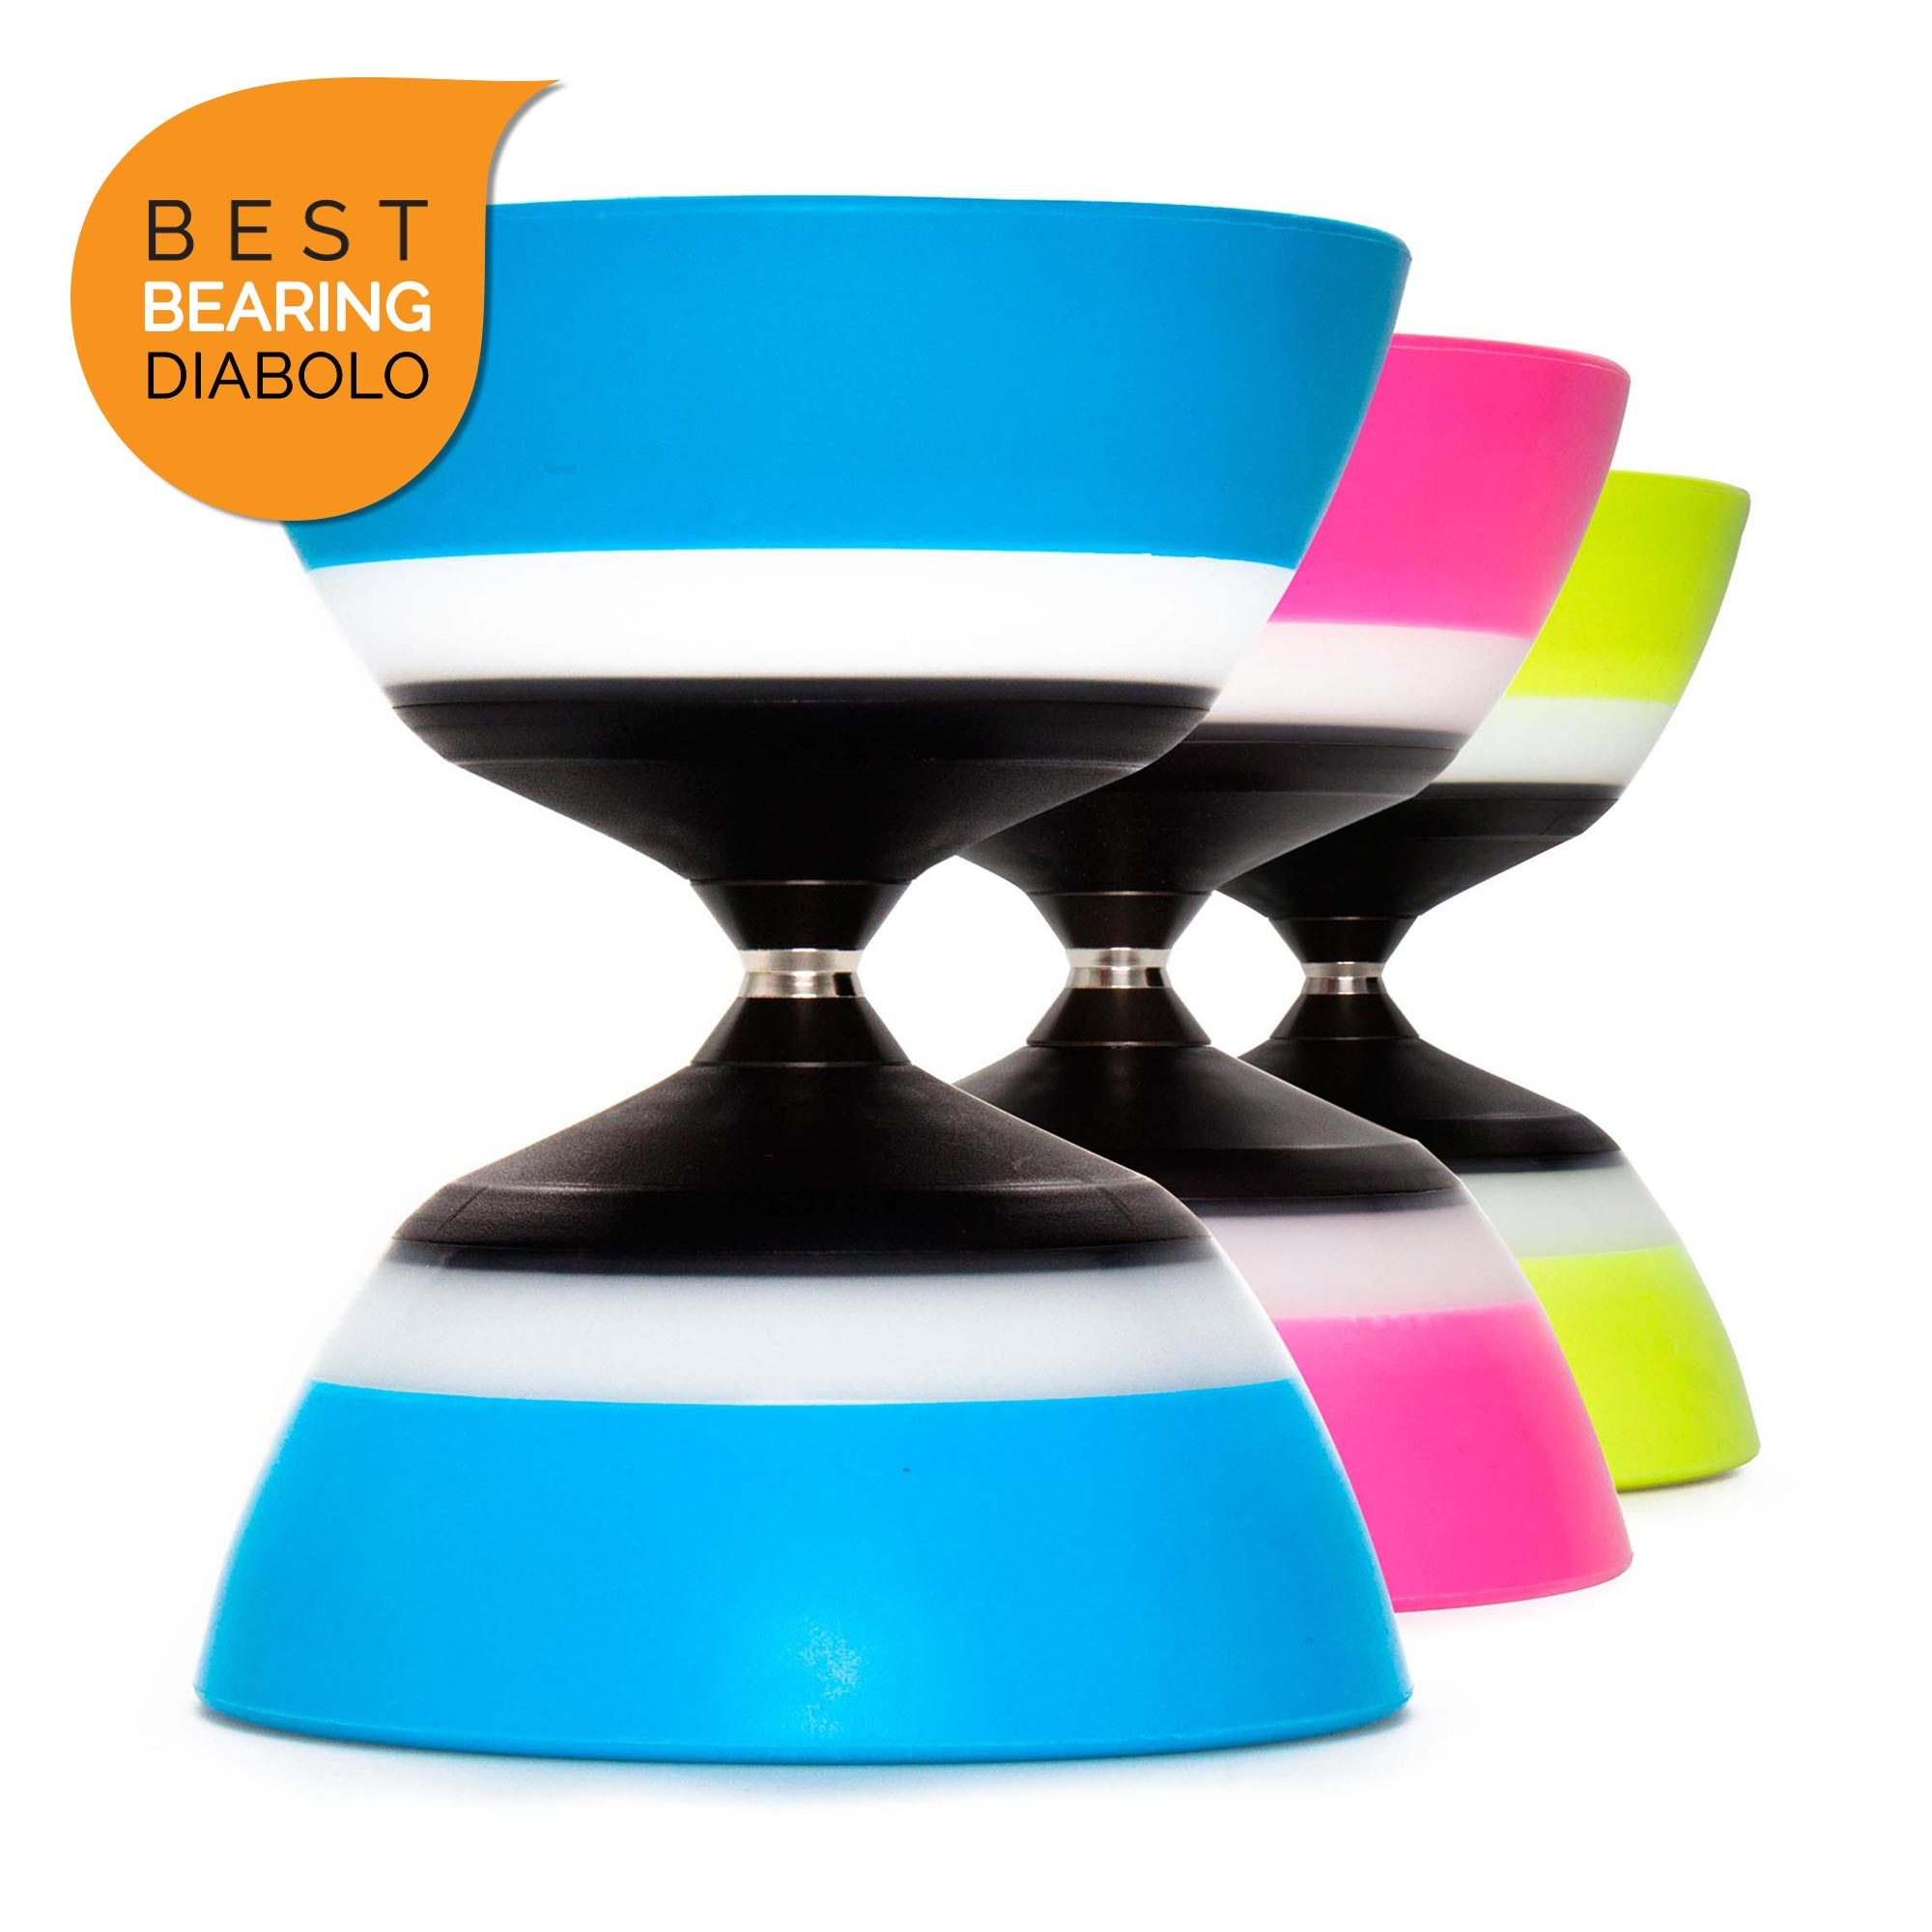 Sundia Evo 5° Diabolo - The Best Large Bearing Axle Diabolo